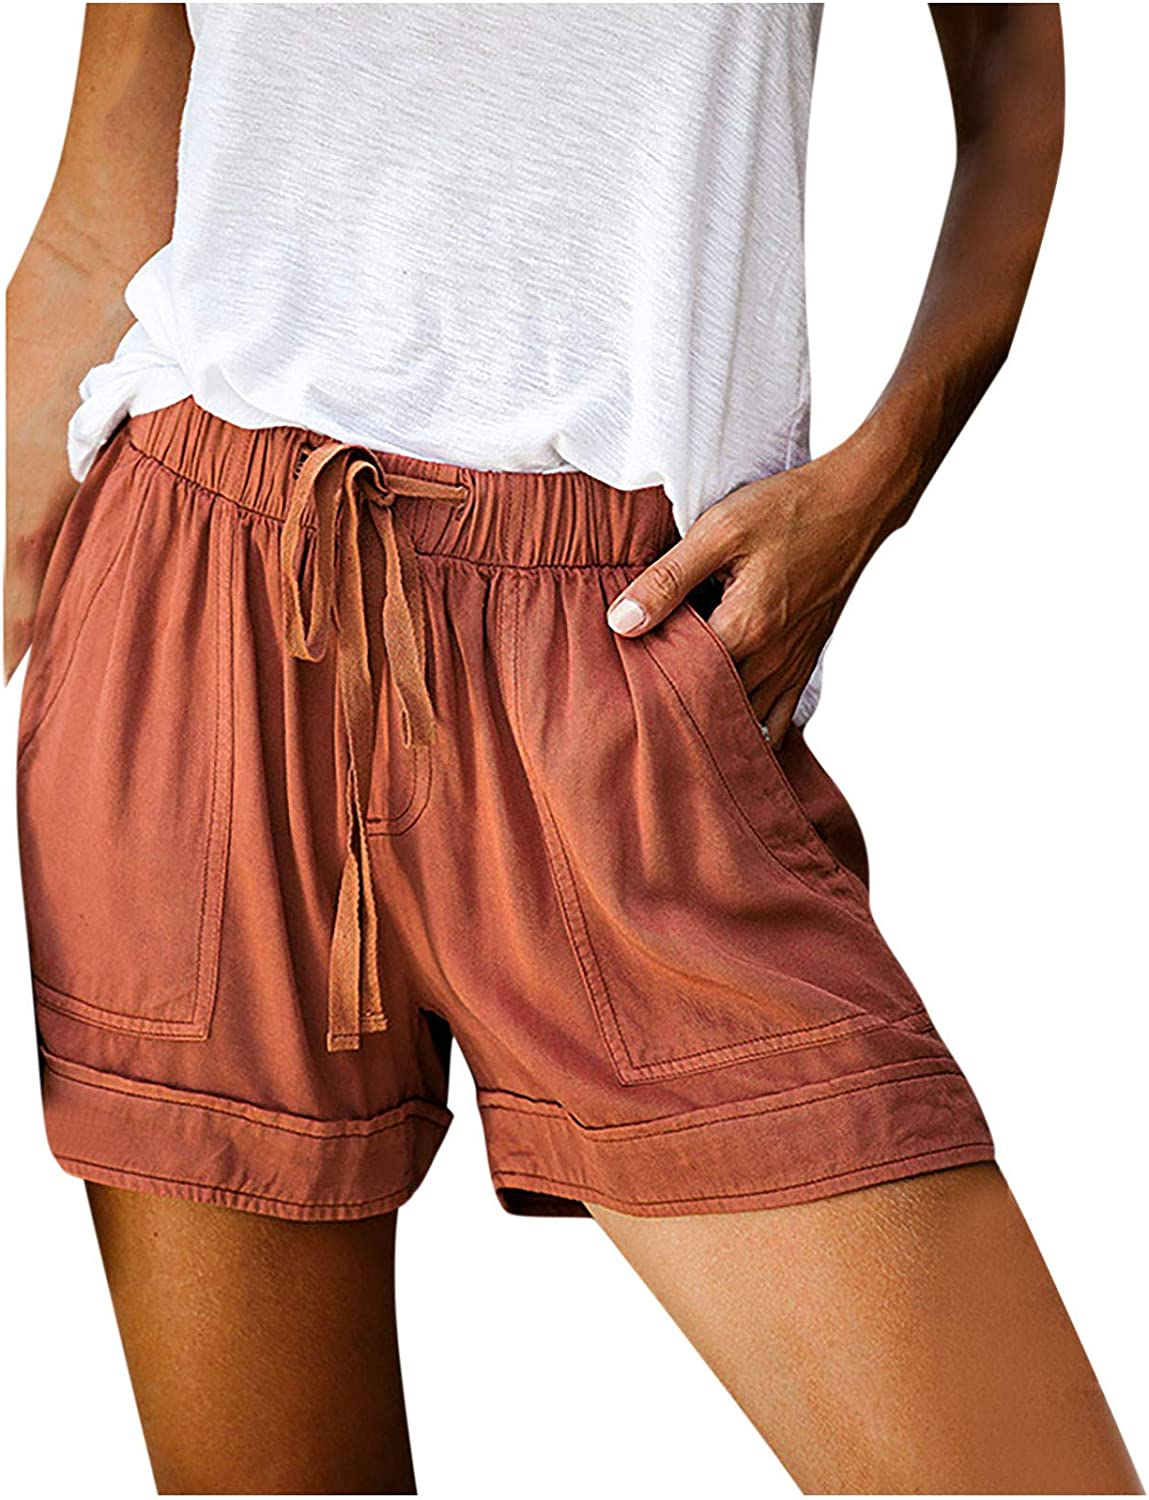 Hessimy womens shorts for Summer,Womens Casual Shorts Summer Drawstring Elastic Waist Comfy Short with Pockets